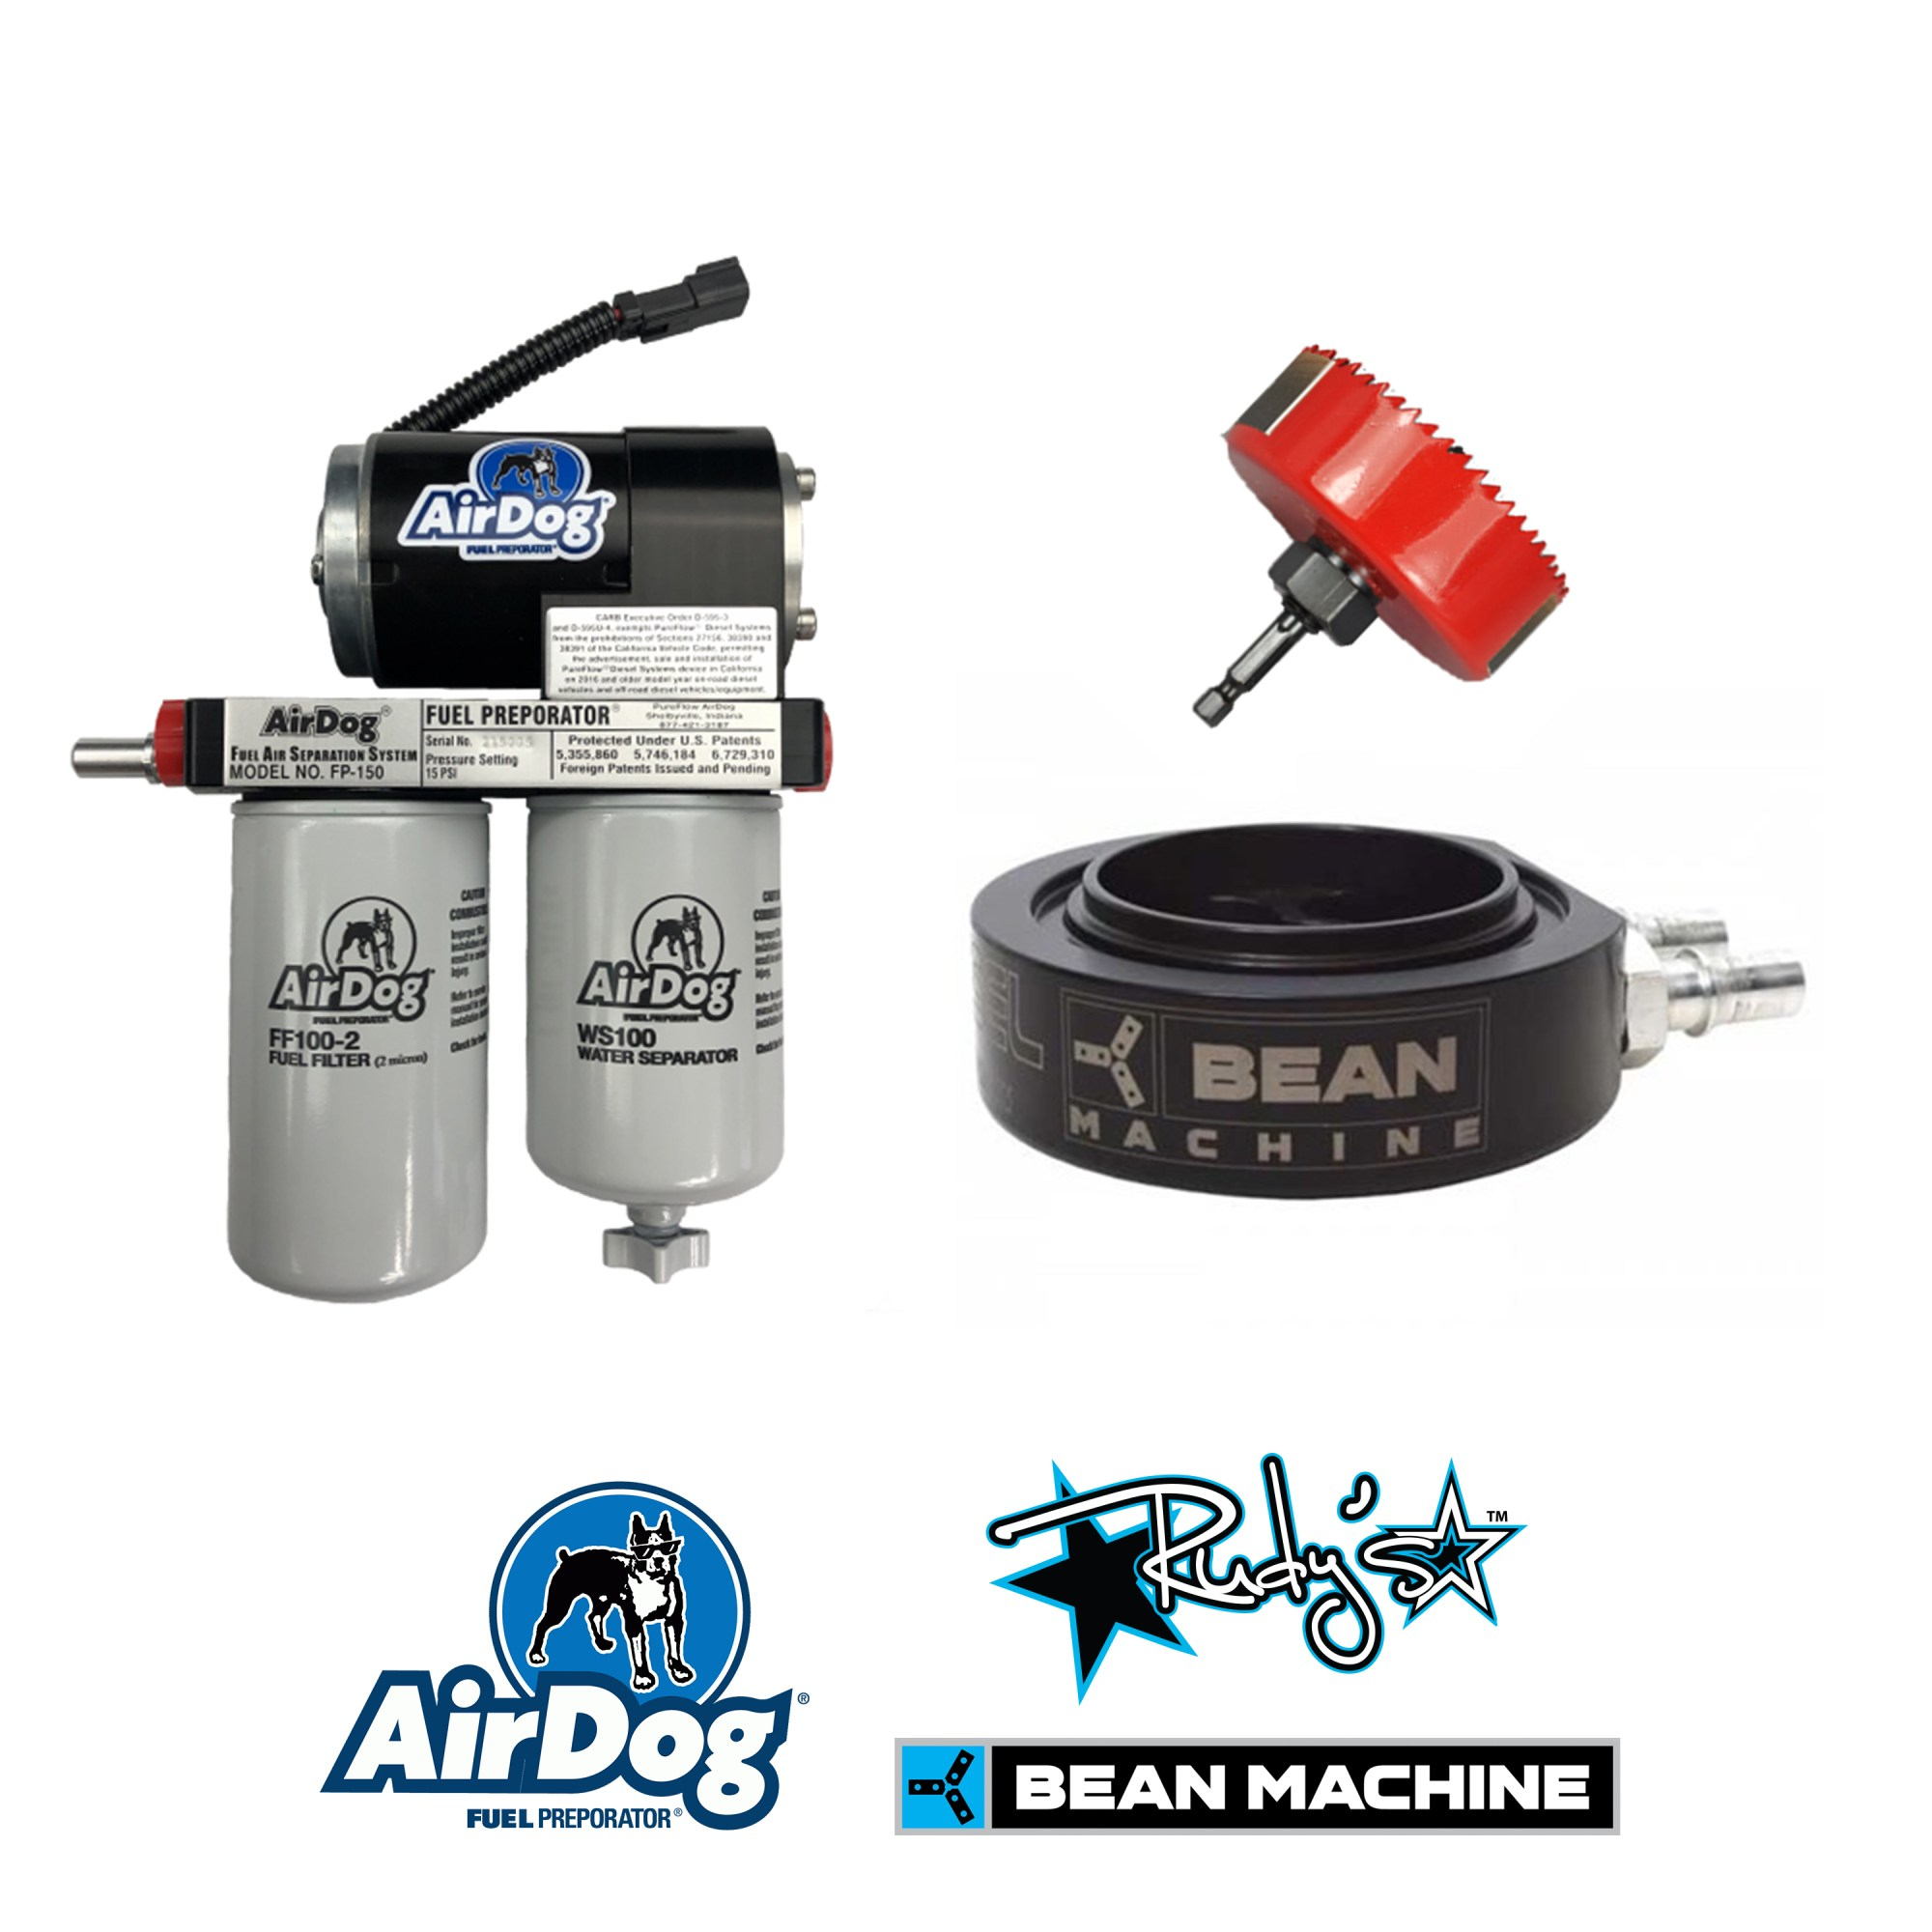 hight resolution of airdog 150 gph fuel lift pump sump for 89 93 dodge ram 5 9l cummins diesel